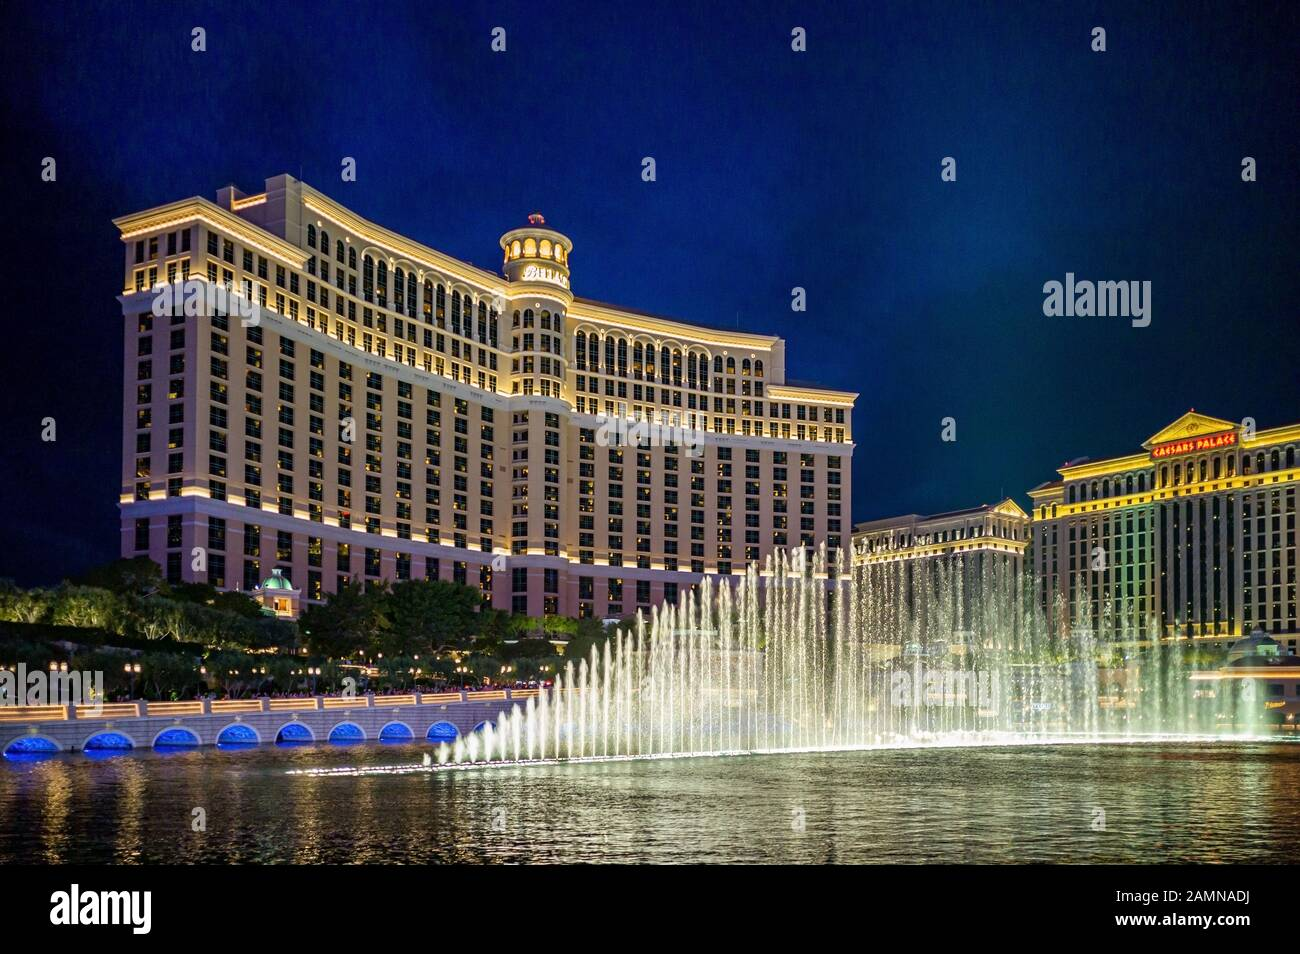 The Bellagio Is A Resort Luxury Hotel And Casino On The Las Vegas Strip In Paradise Nevada Stock Photo Alamy